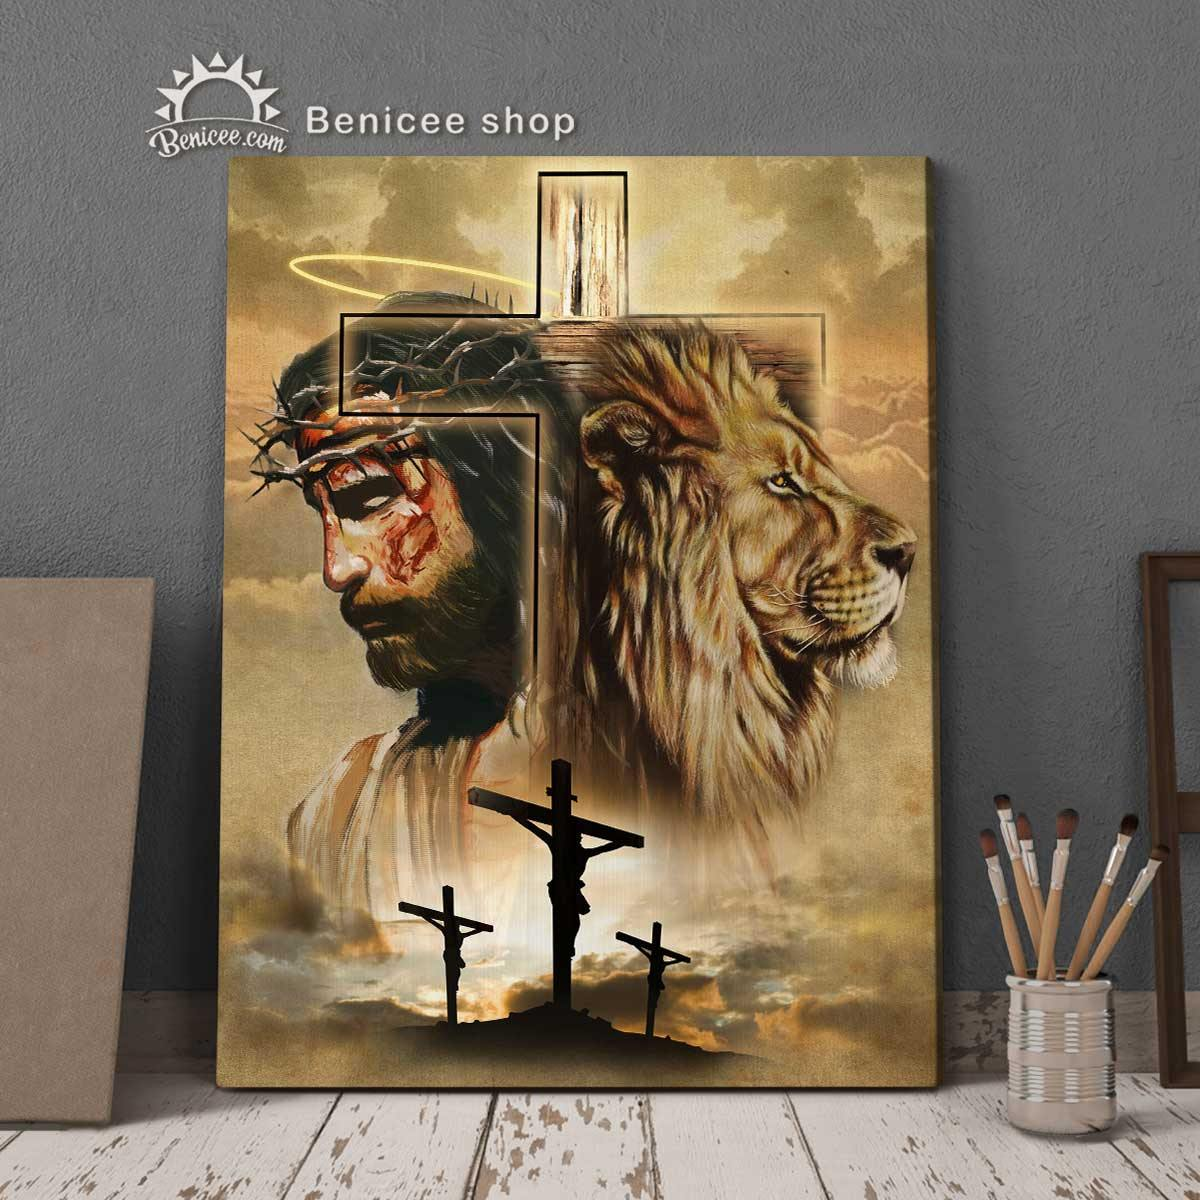 Framed/ Wrapped Faith Wall Art Canvas Faith Art Inspire Jesus And Lion V2 BENICEE SHOP-framed canvas-Benicee